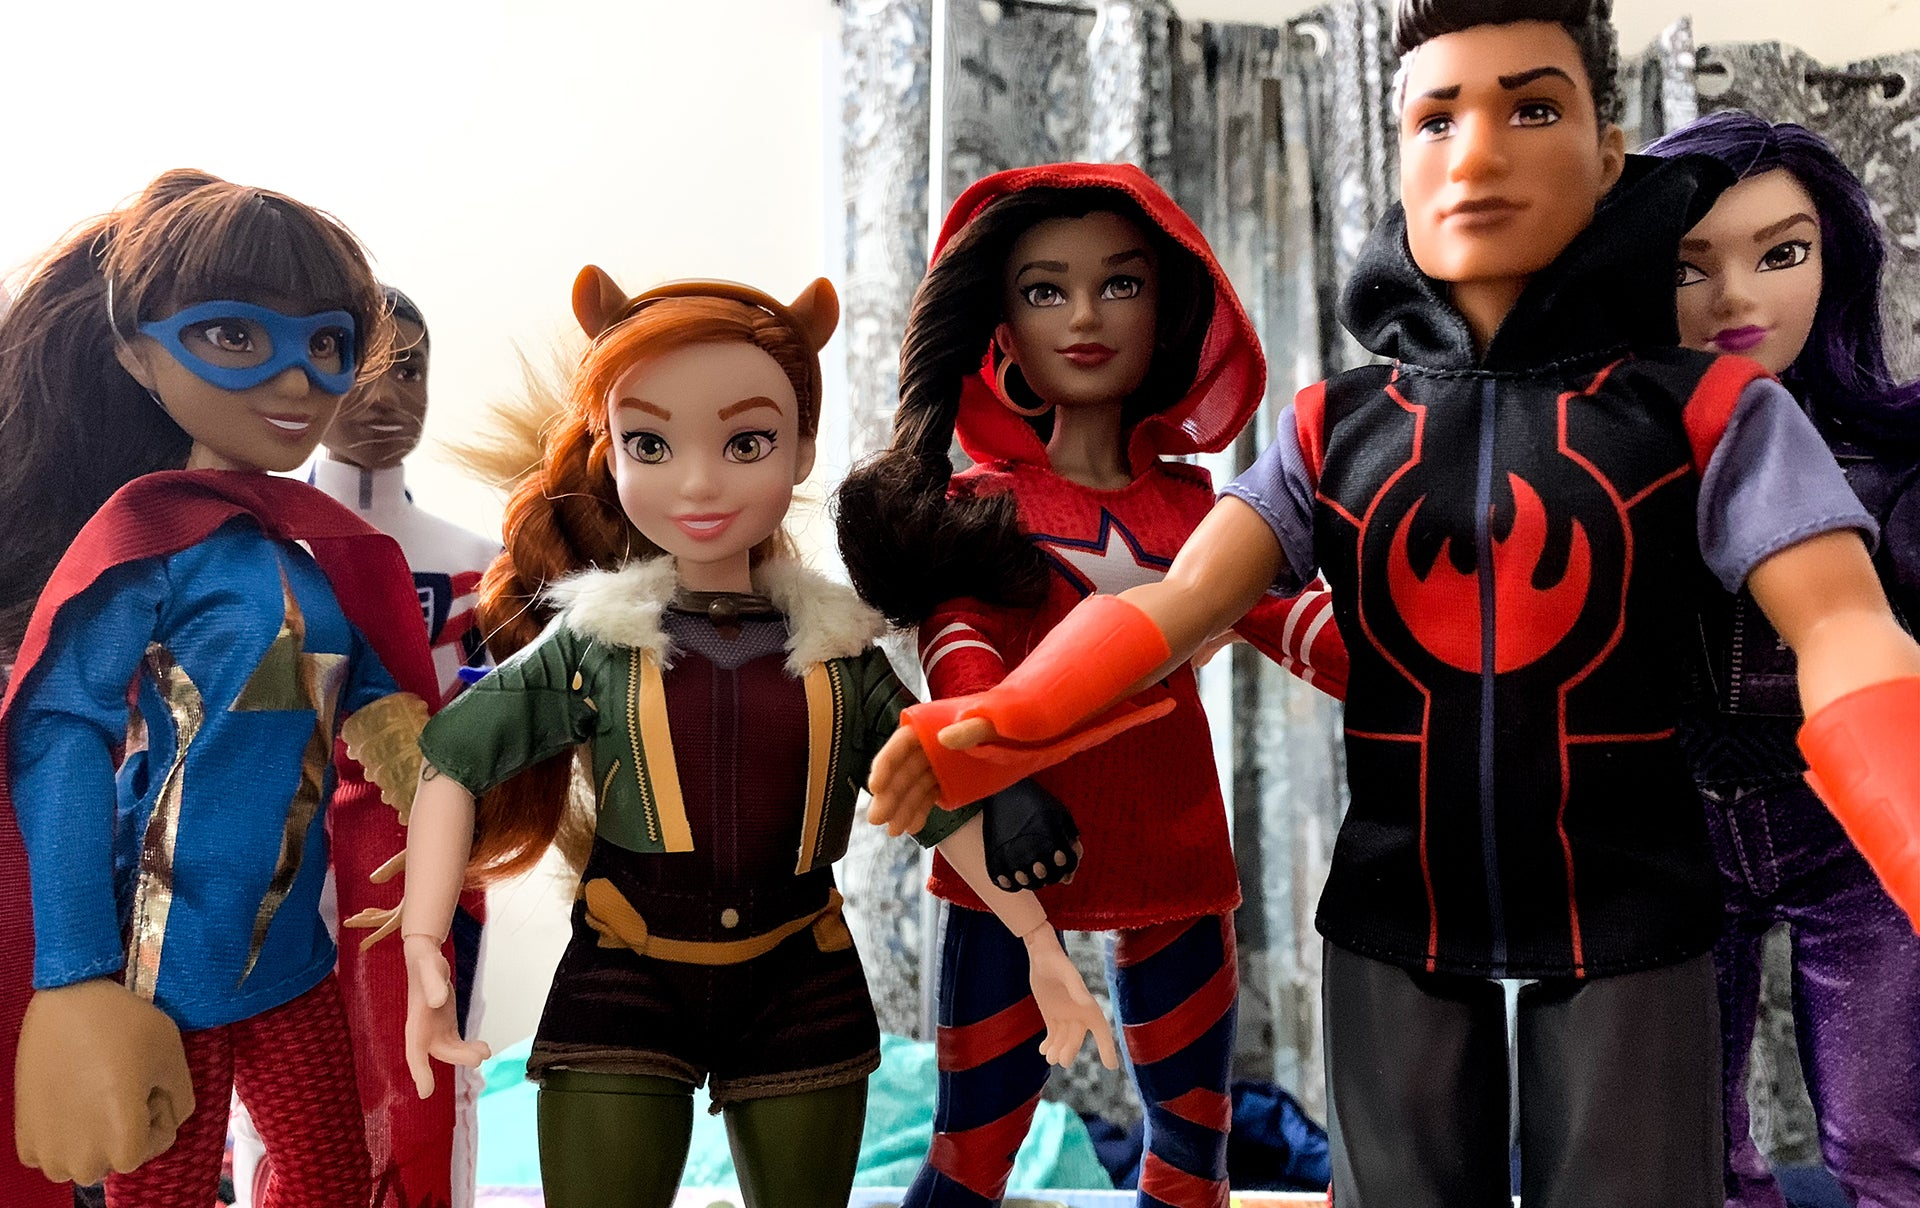 Secret Warriors Dolls Bring Marvel Characters To A New Audience